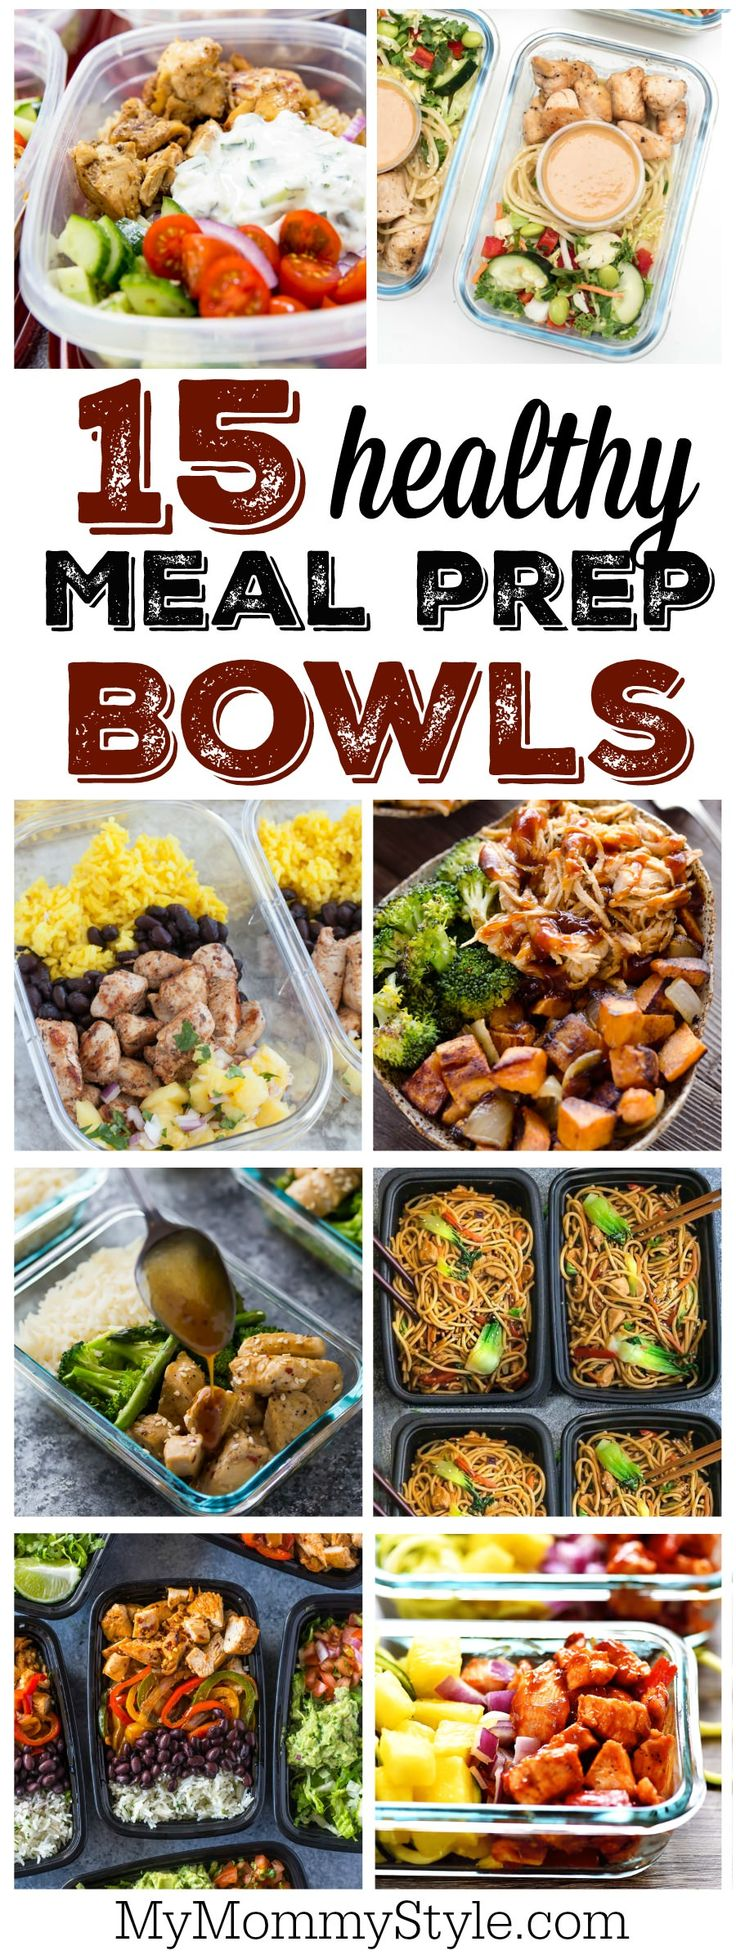 15 wholesome and simple meal prep bowl recipes